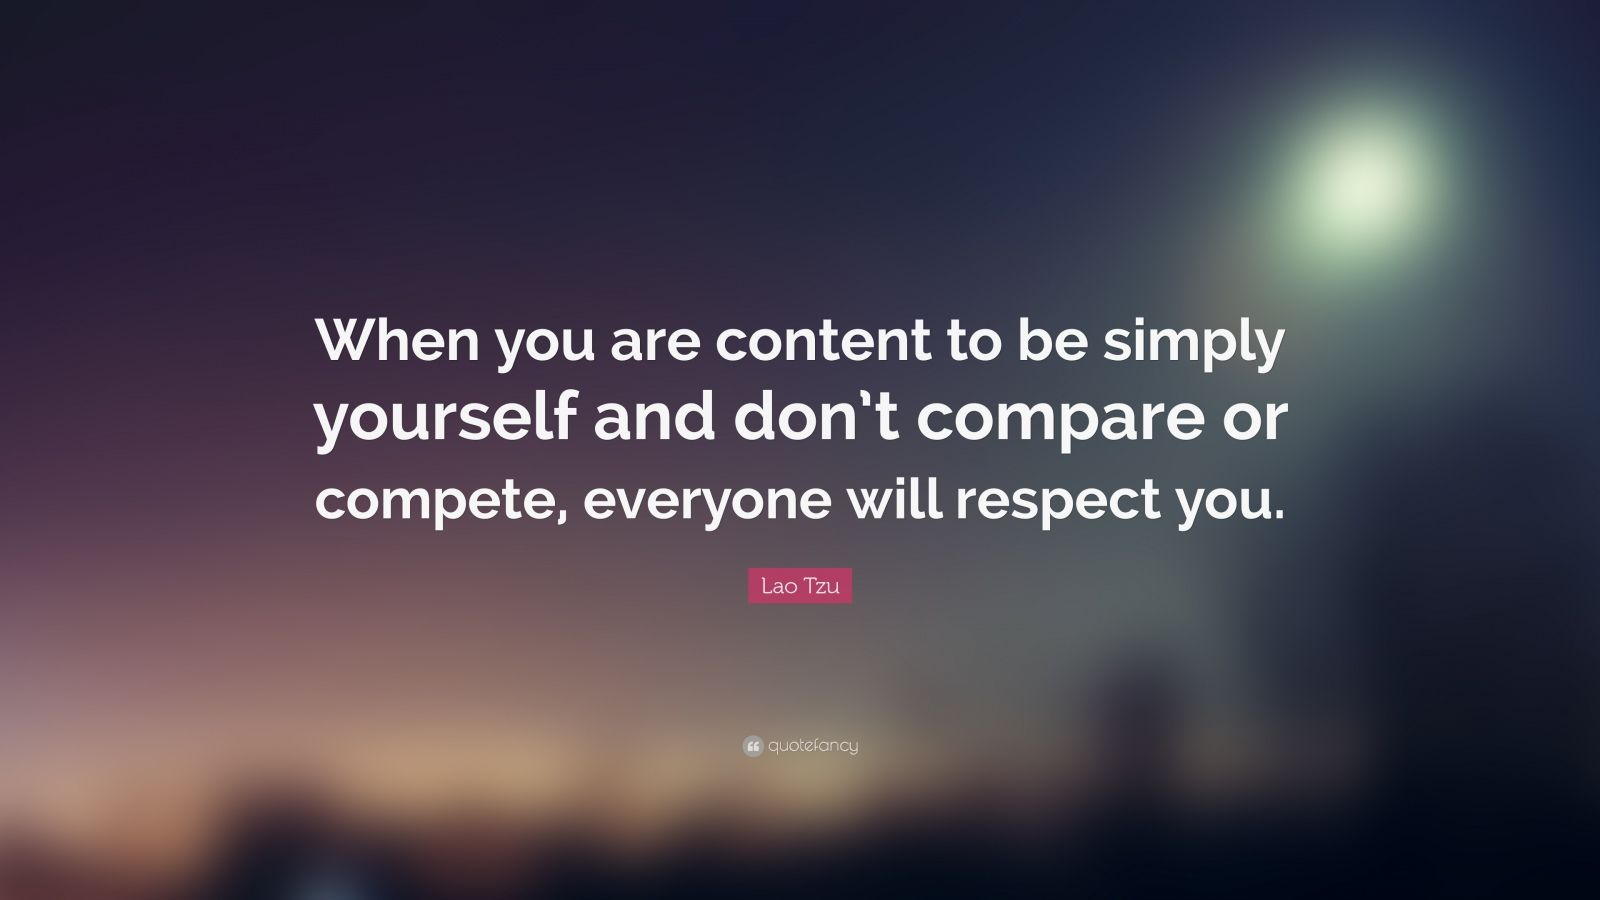 Lao Tzu If You Are Content to Be Yourself Simply